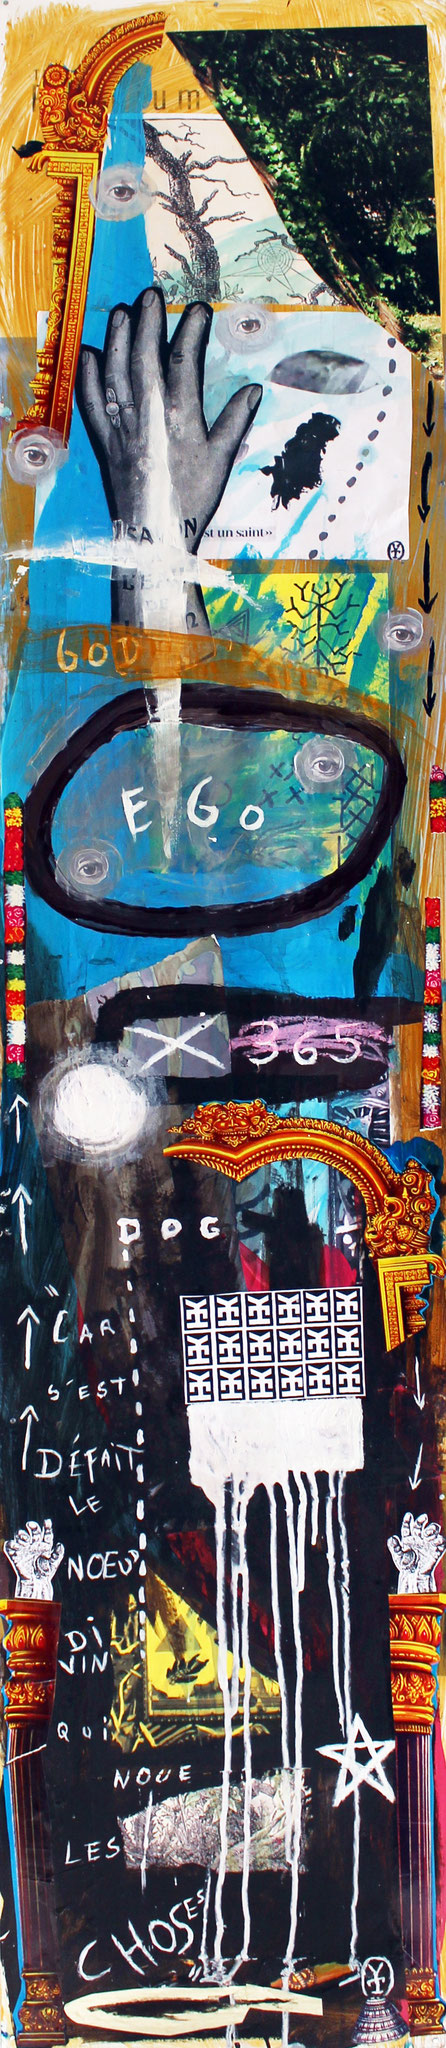 GOD EGO DOG/ Acrylic, collage on plastic -11.5x58 inch/ 2015